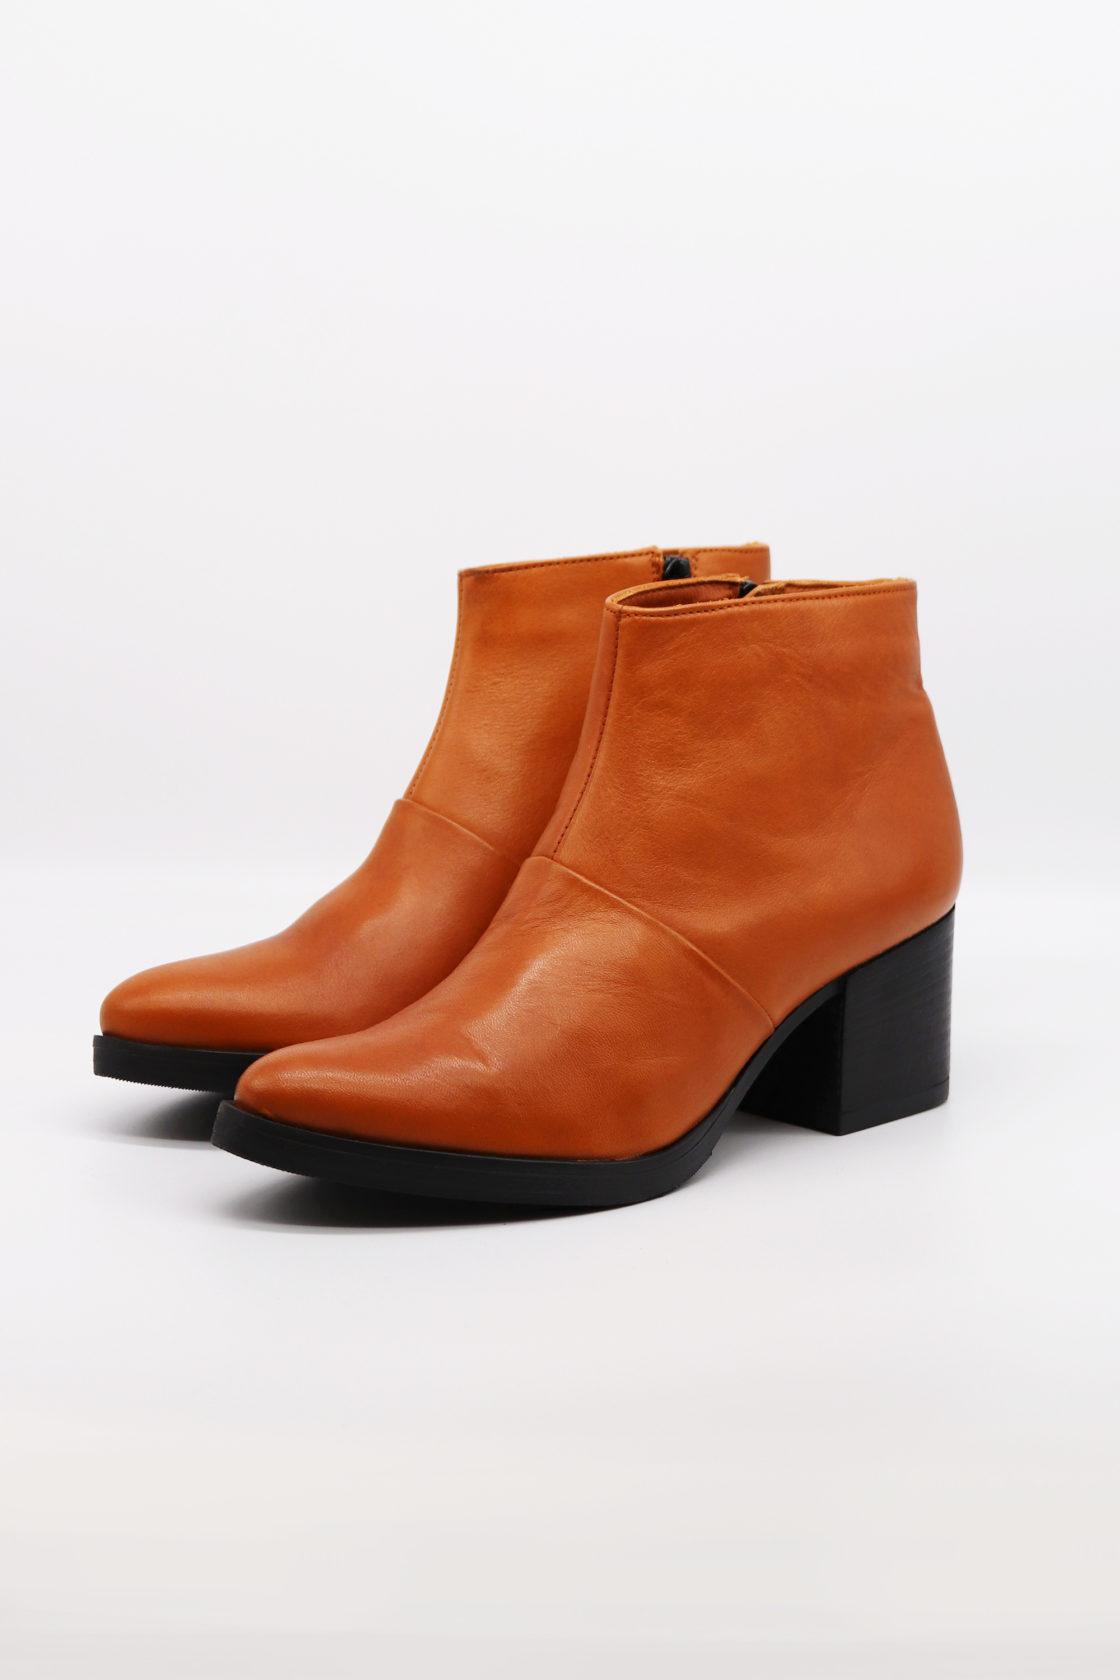 Roberta Organic Fashion Werner Ankle Boots Cognac 4